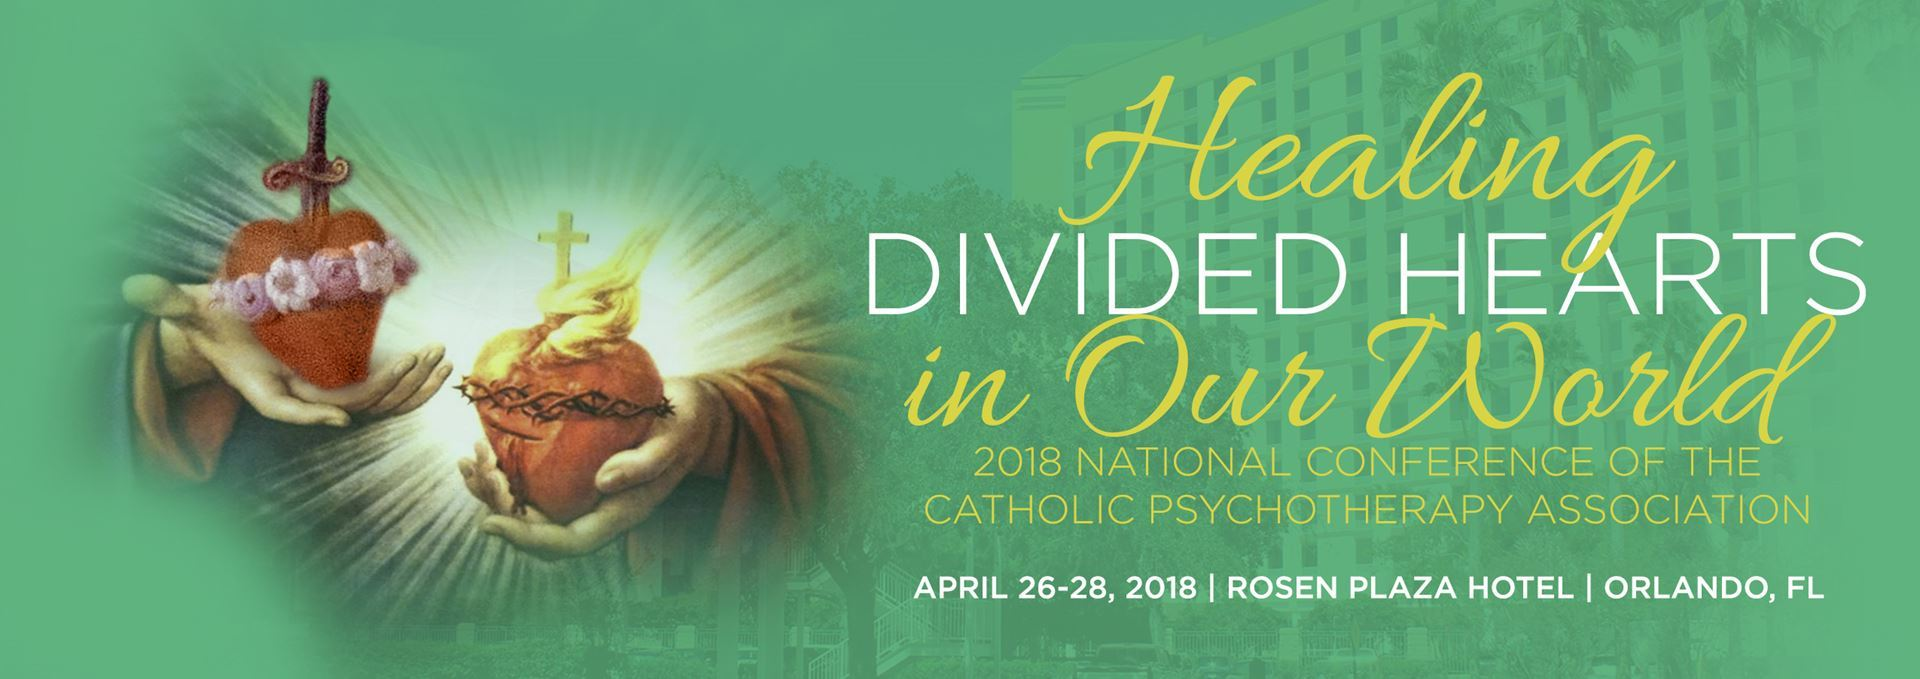 Catholic Psychotherapy Association - Conference Recordings